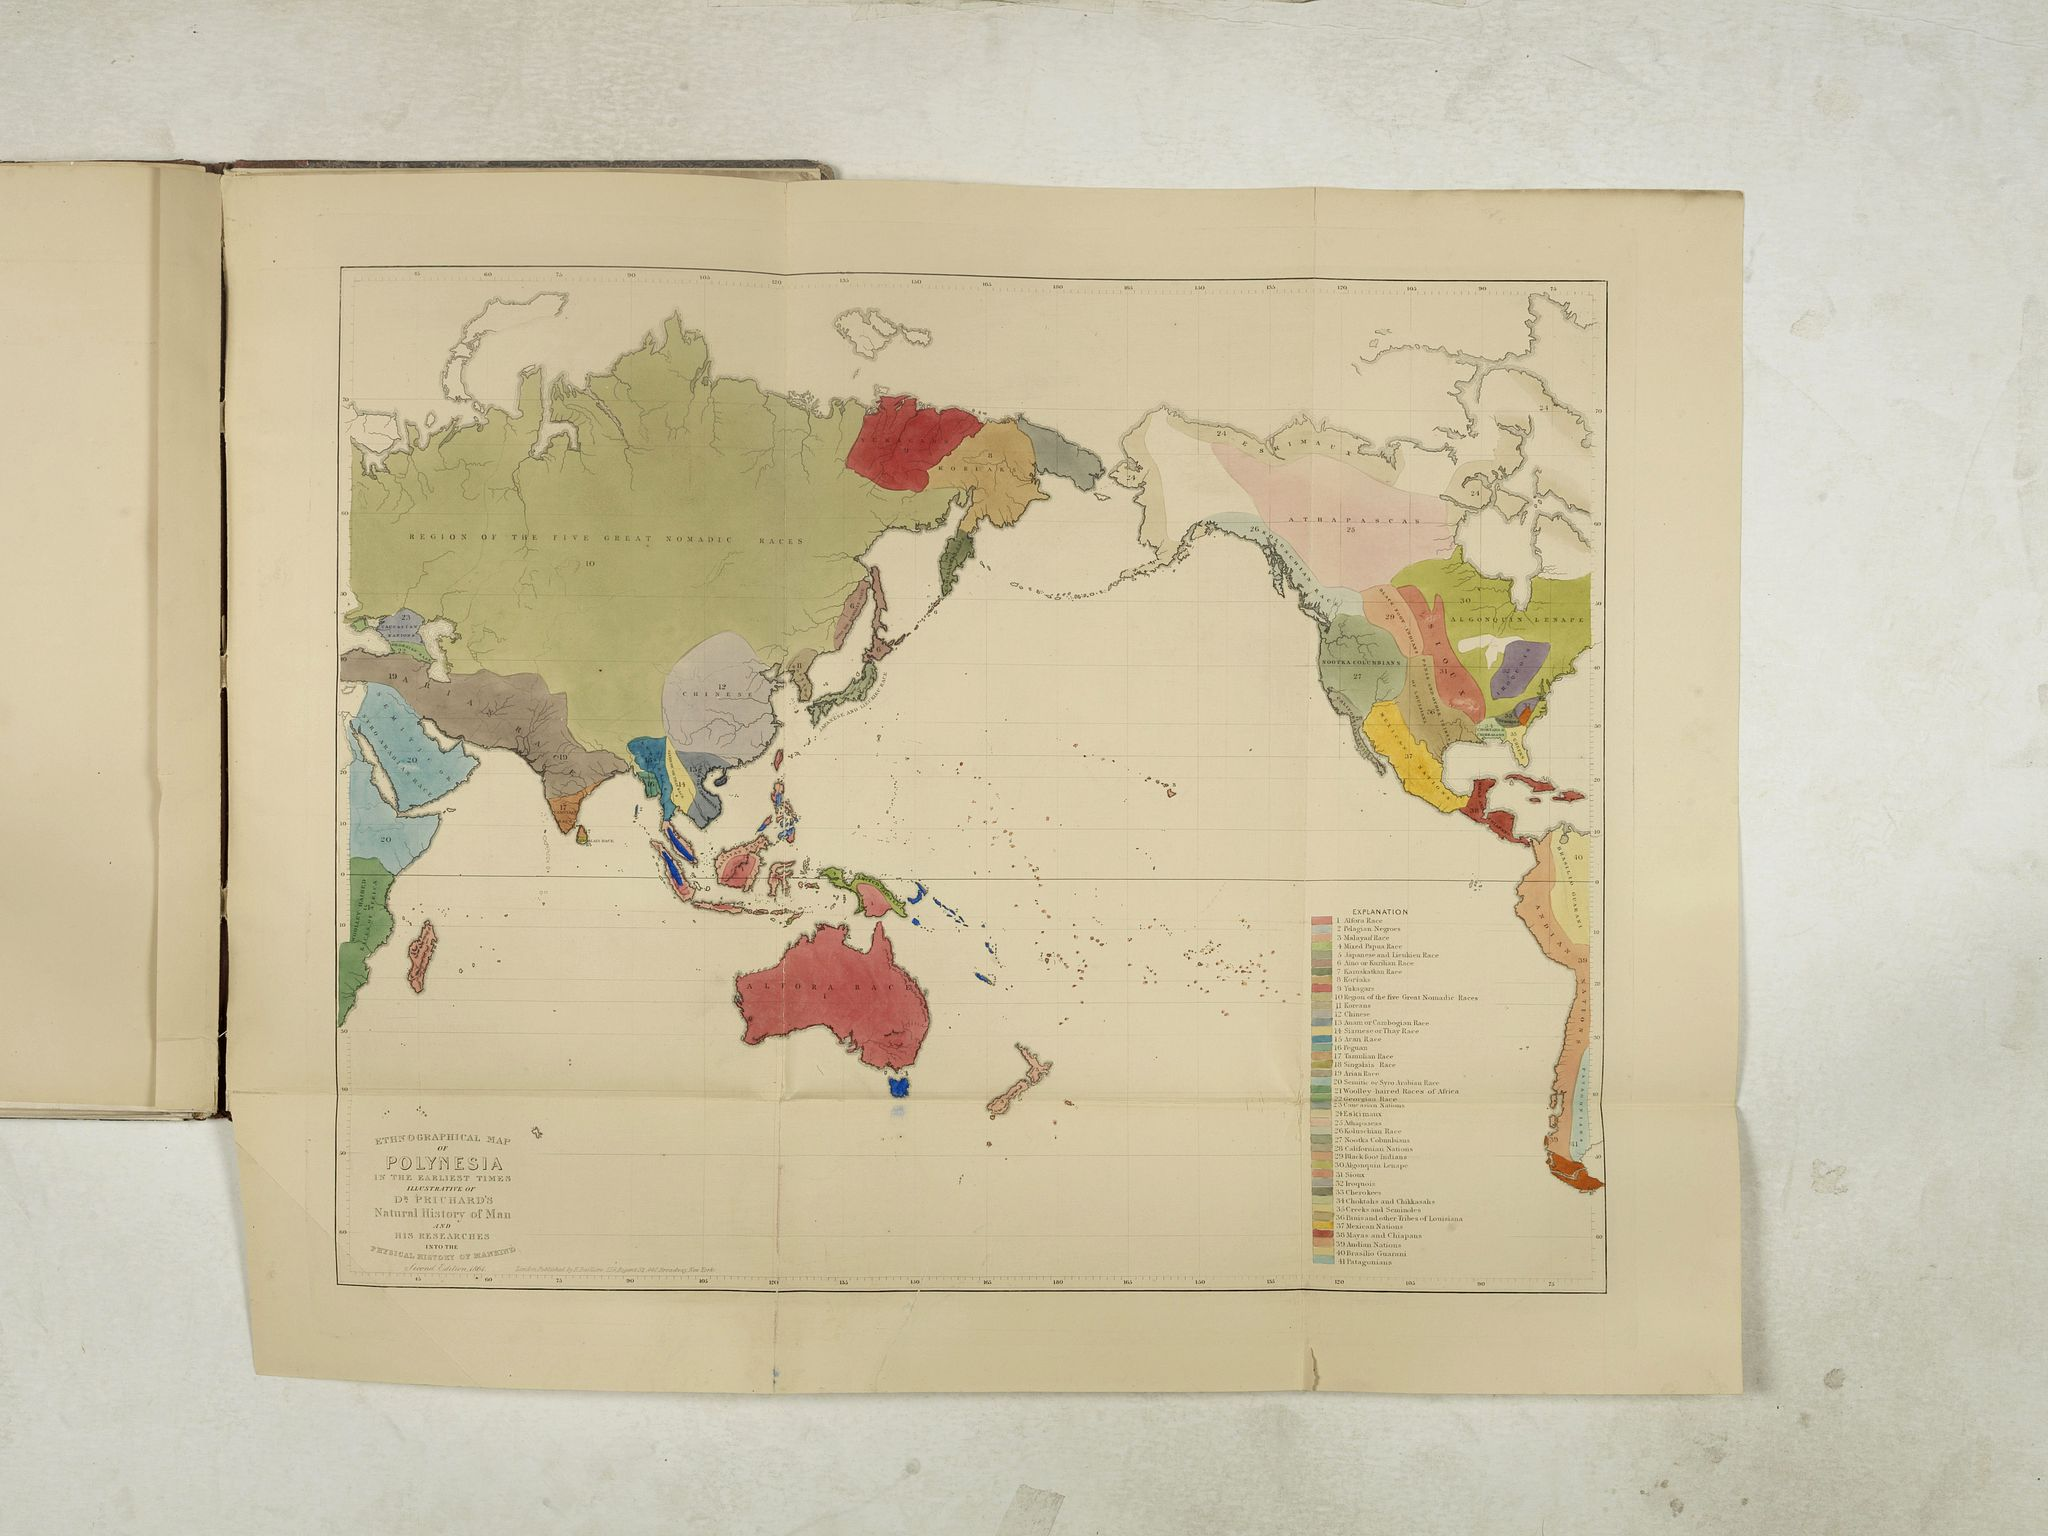 PRICHARD, J, C. -  Six ethnographical maps illustrative of The Natural History of Man . . .